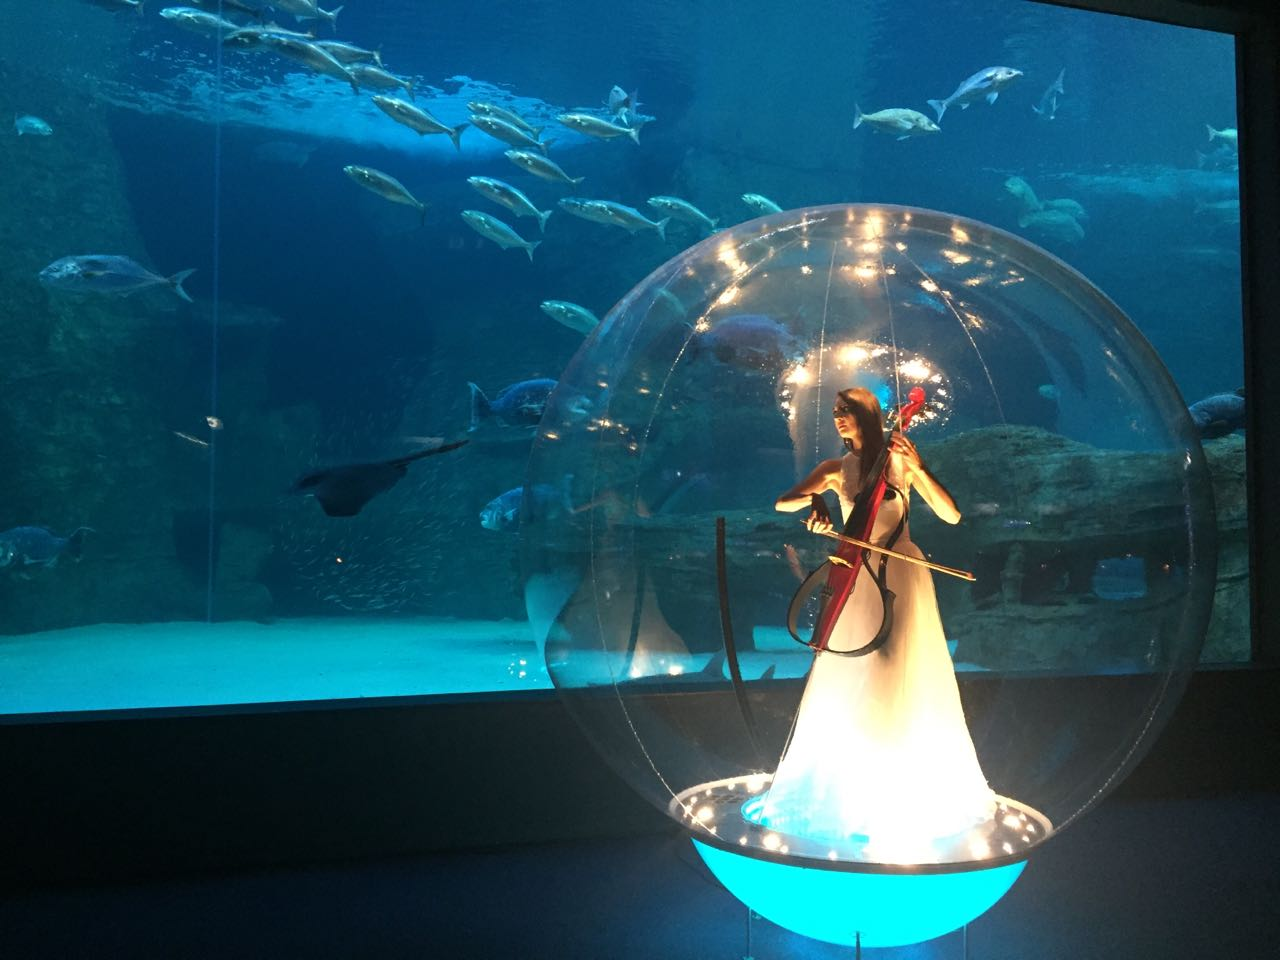 Host Your Unforgettable Event At The Two Oceans Aquarium